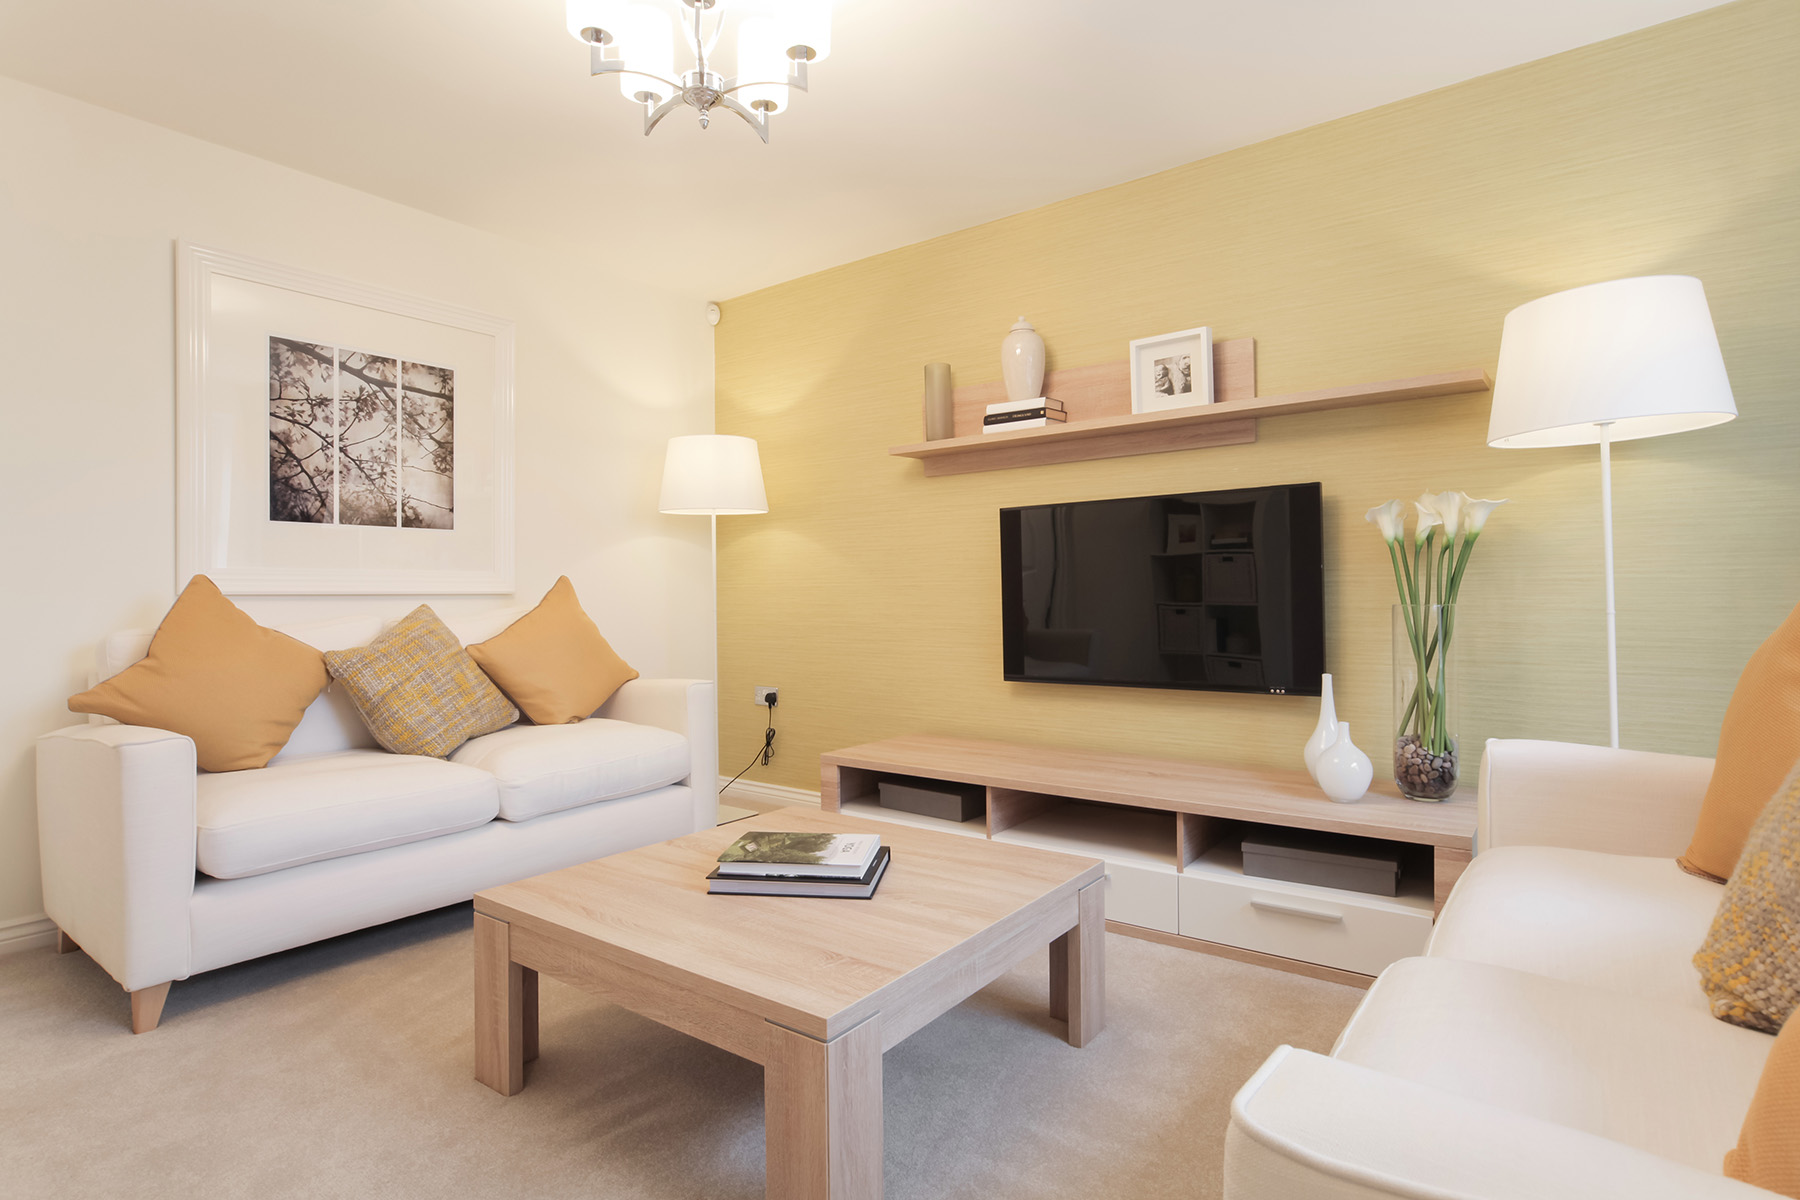 Taylor Wimpey - Cranbrook - Gosford example living room